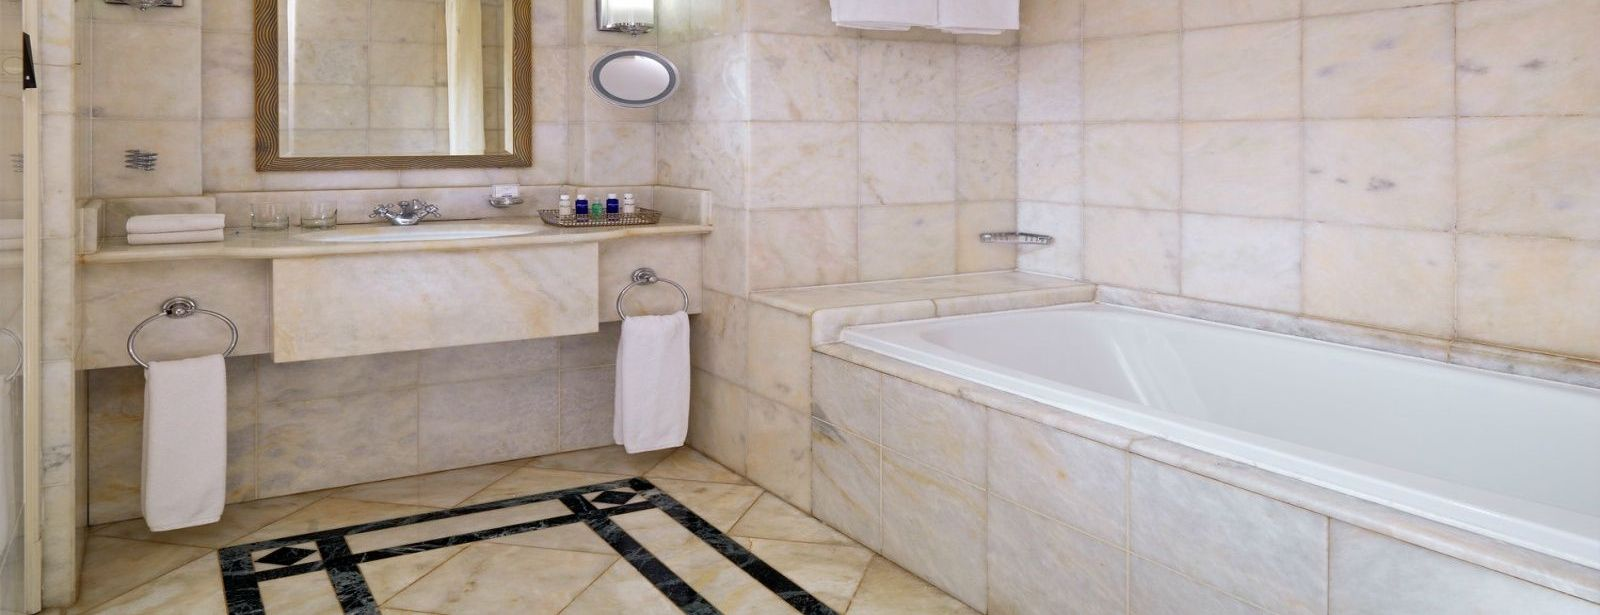 Classic Suite spacious bathroom interior with bath and walk in shower